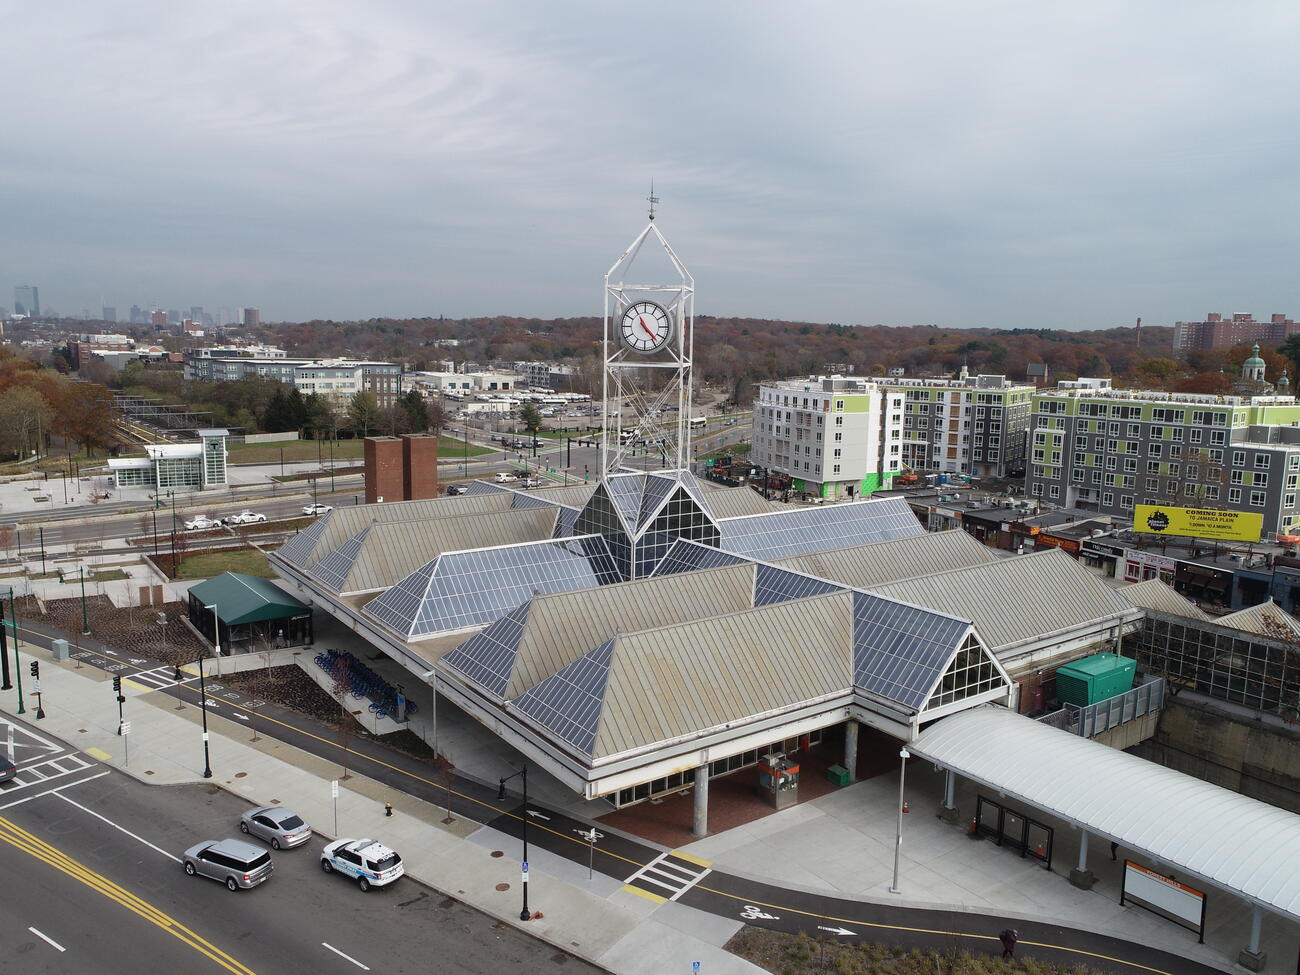 An aerial shot of Forest Hills Station showing the geometric glass and metal roof